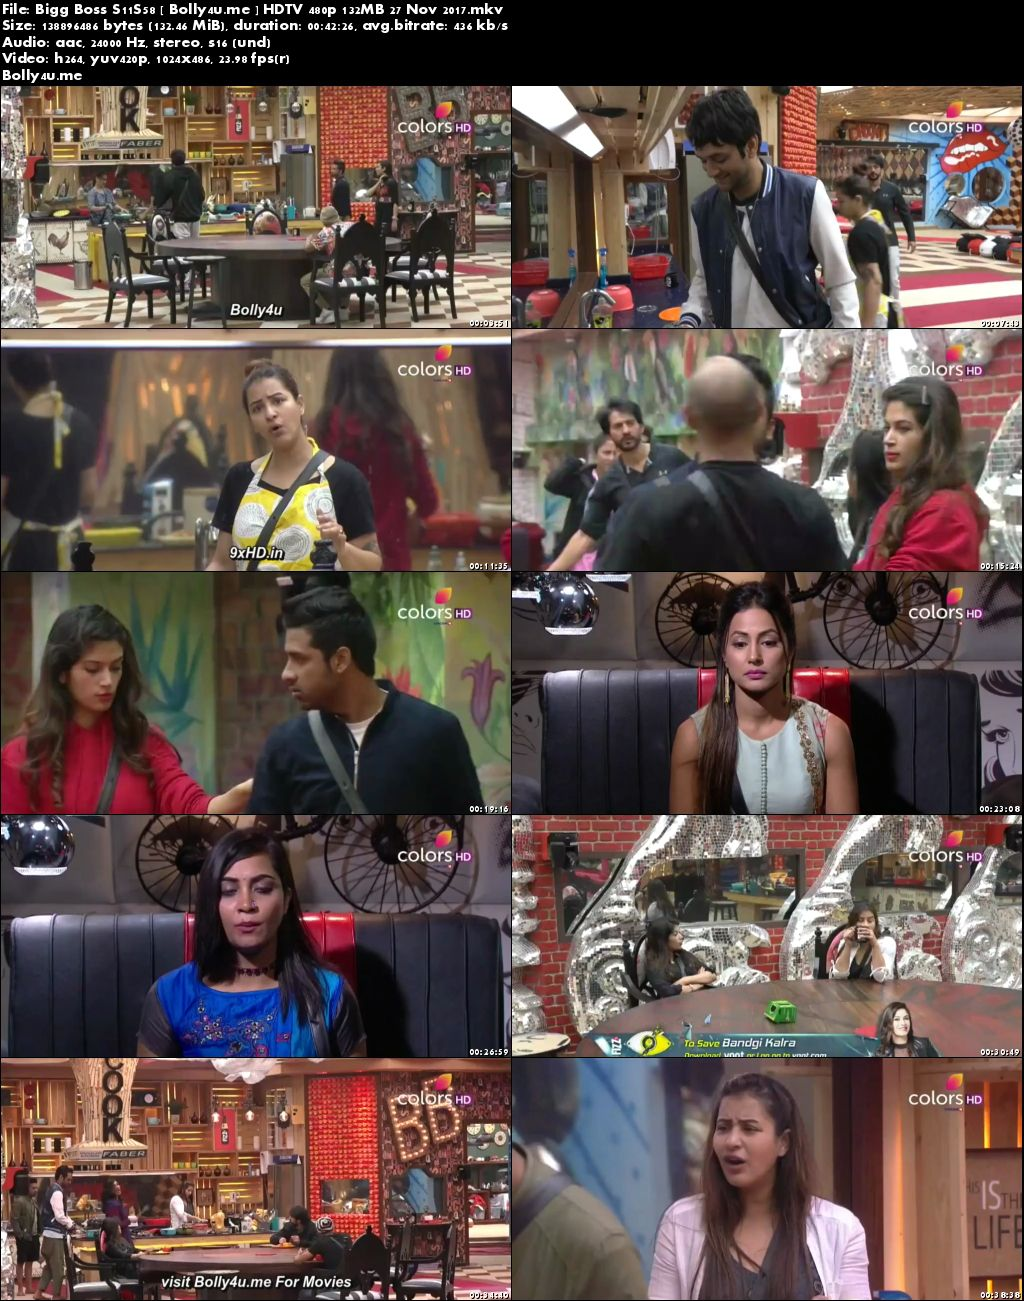 Bigg Boss S11S58 HDTV 480p 140MB 27 Nov 2017 Download